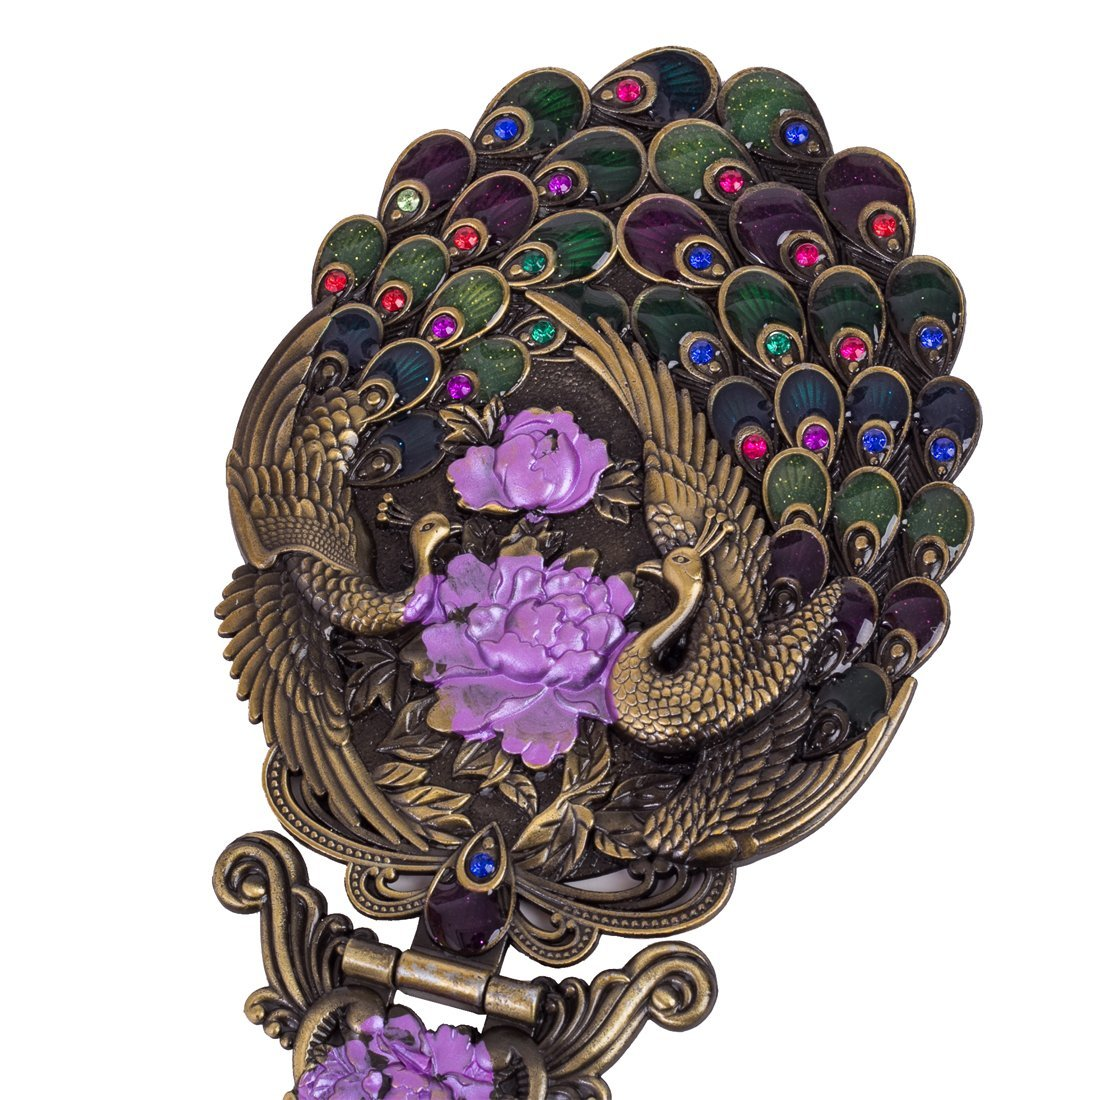 MOIOM Vintage Style Metal Foldable Oval Peacock Flower Pattern Makeup Hand/Table Mirror (Bronze) 3